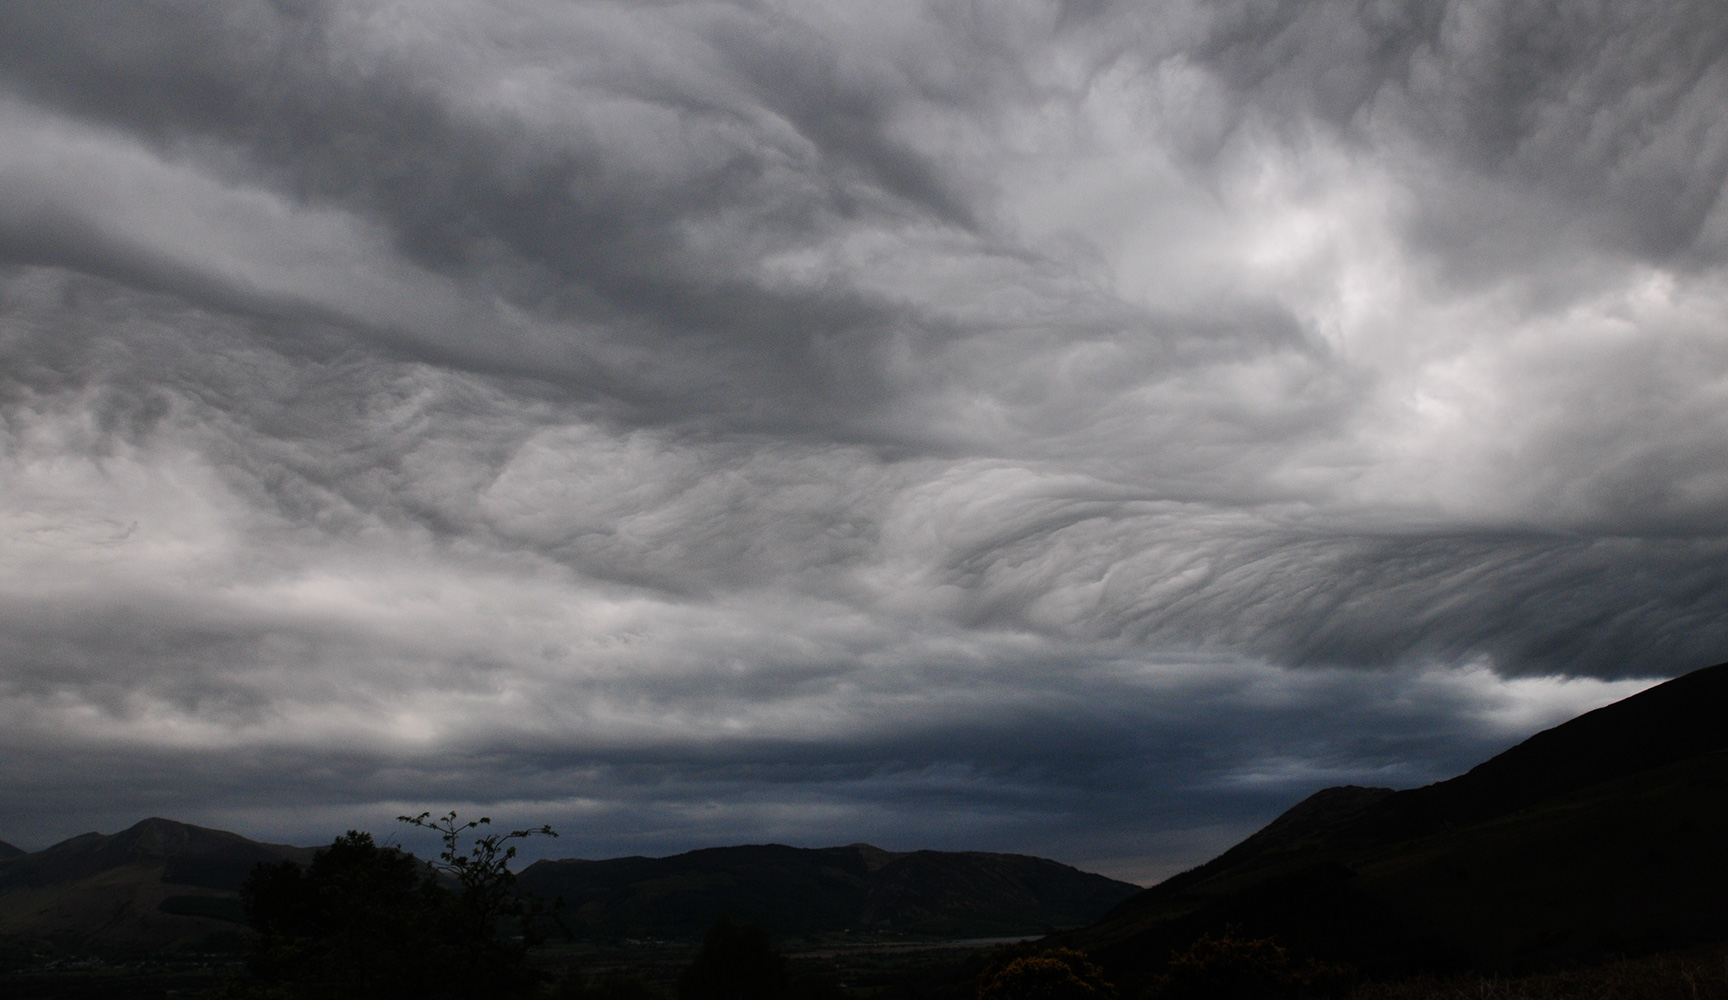 Asperatus Cloud over Keswick, Cumbria